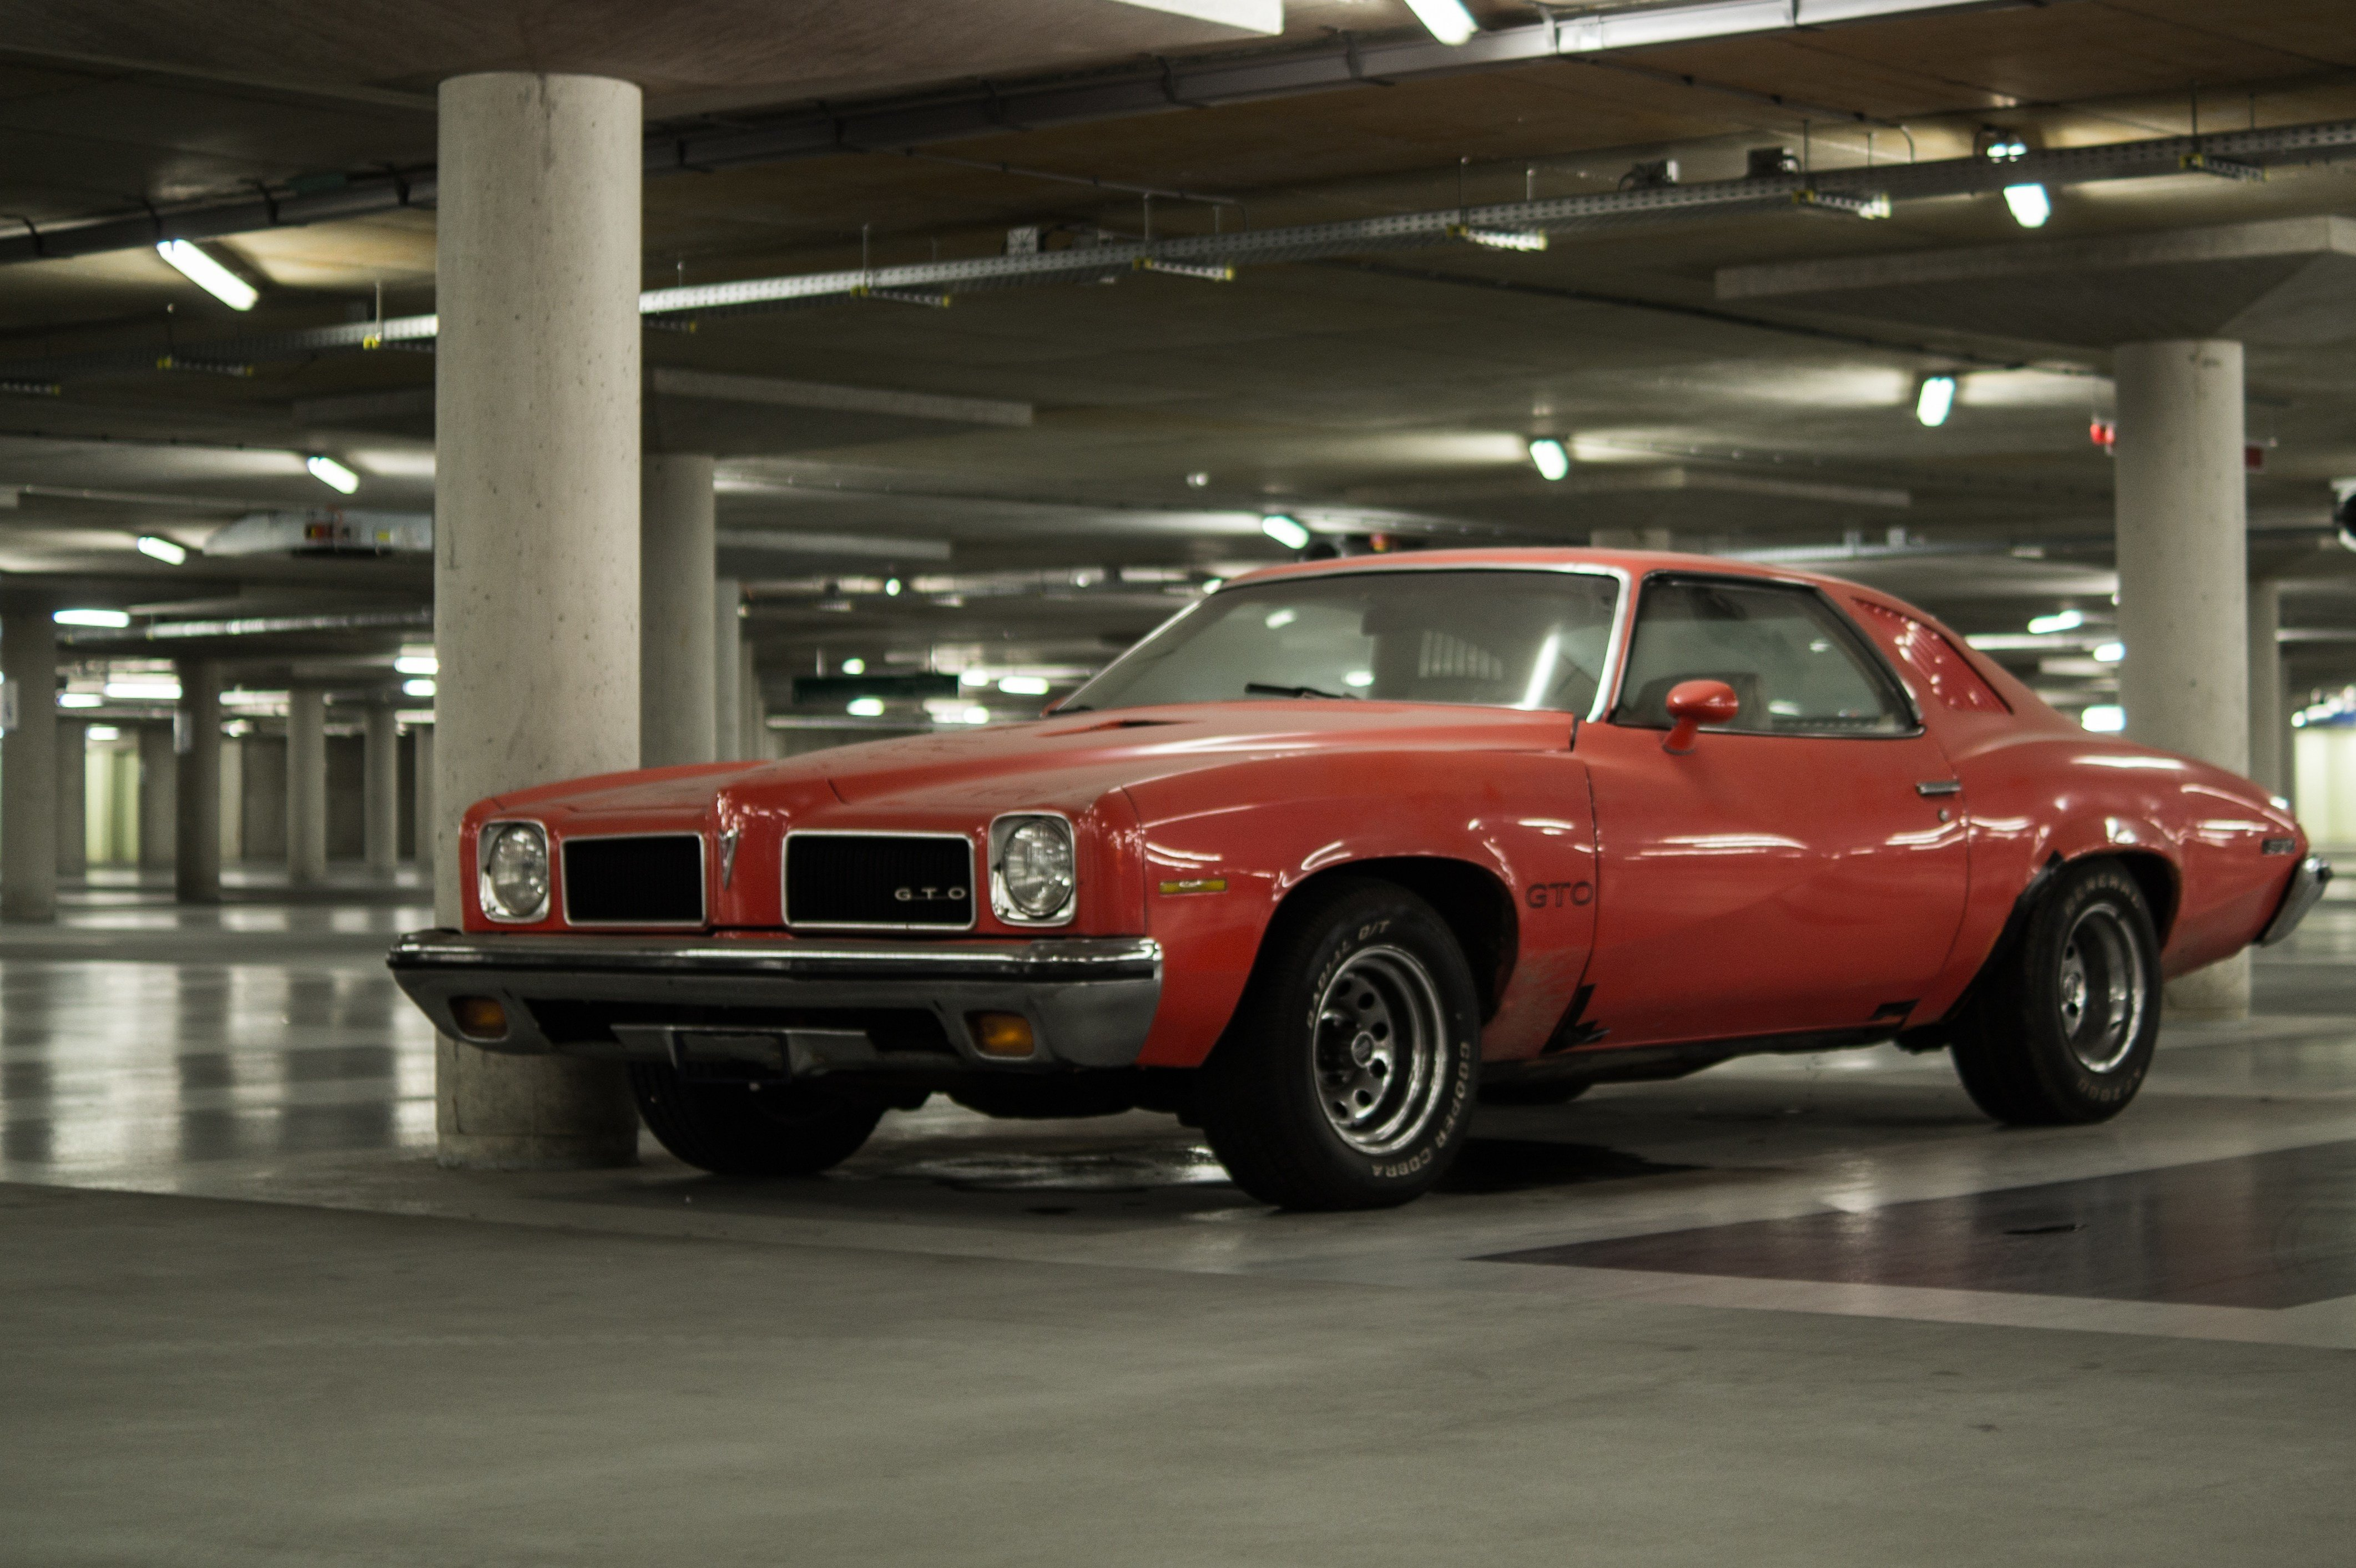 Latest Classic Red Coupe Park Inside Building · Free Stock Photo Free Download